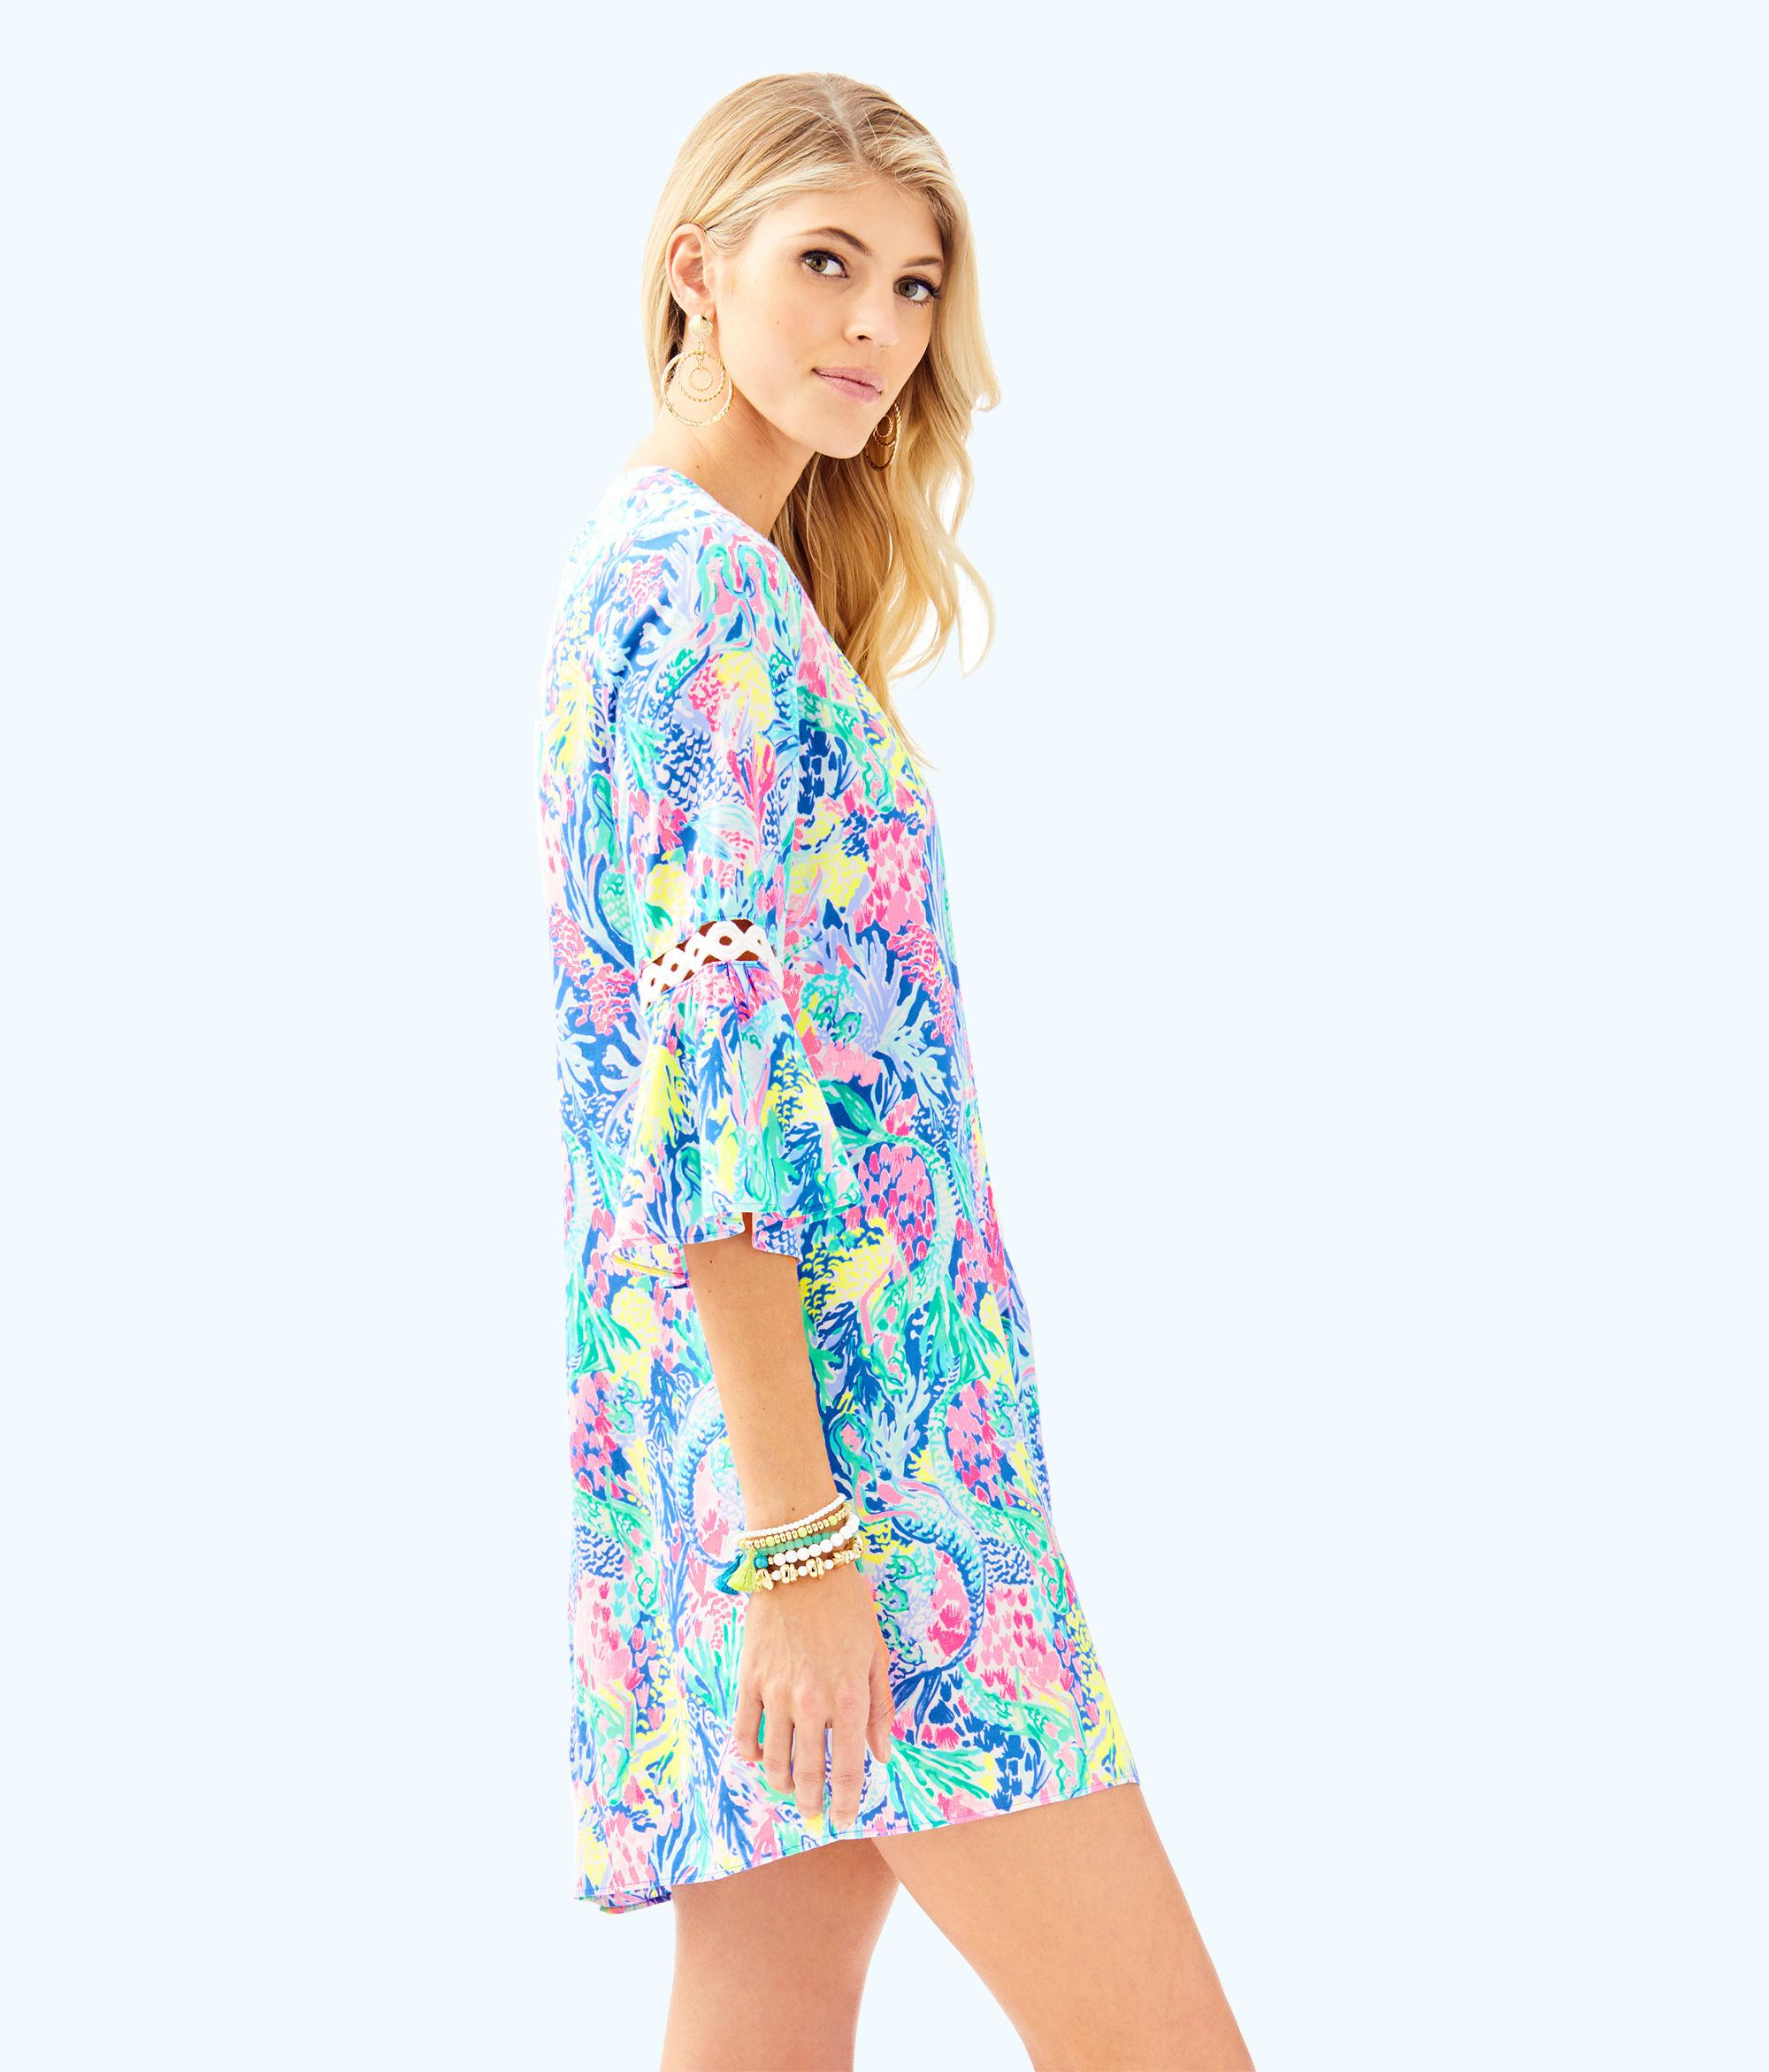 b75f8e8d458 Gallery. Previously sold at: Lilly Pulitzer · Women's Tunic Dresses ...